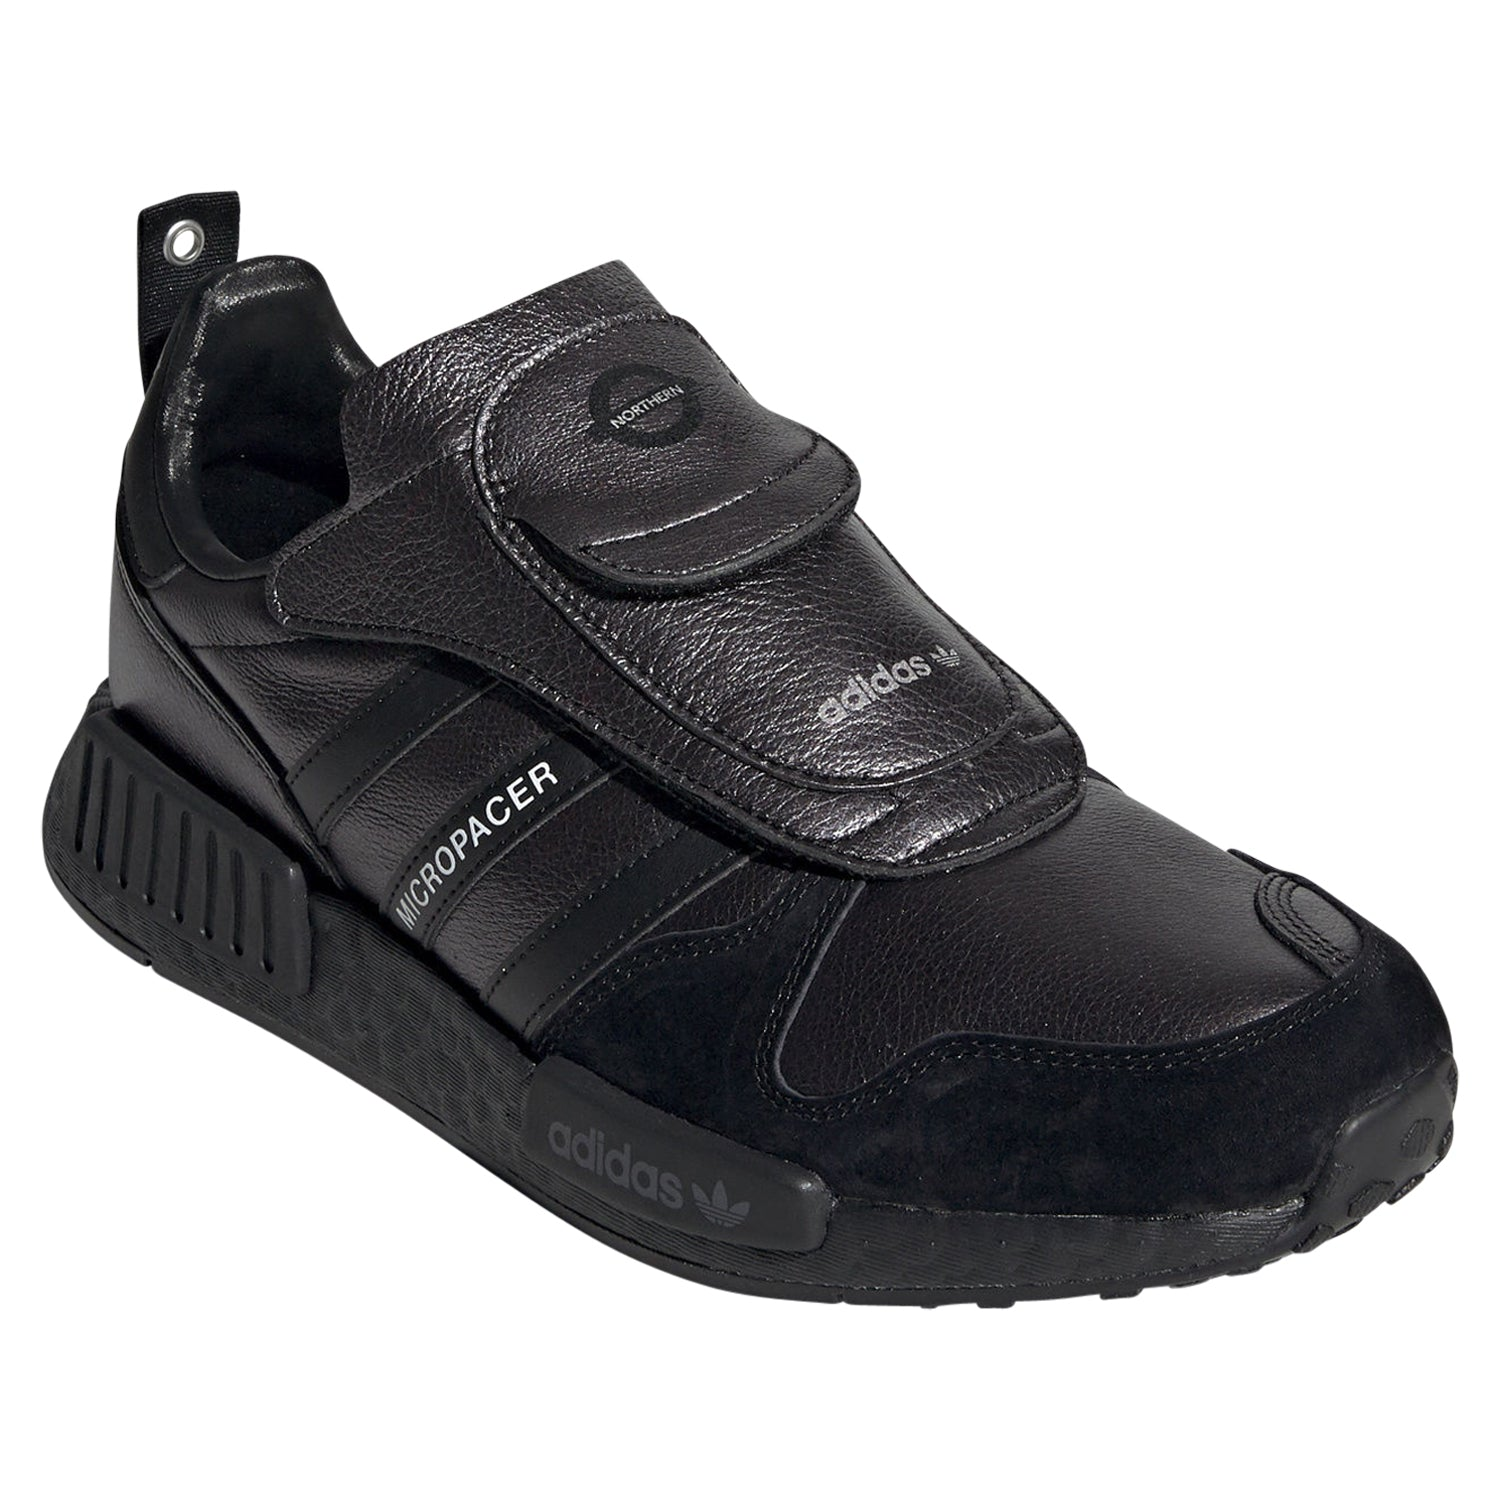 competitive price f024f d9d47 adidas Originals Men's Micropacer x R1 Trainers - Black